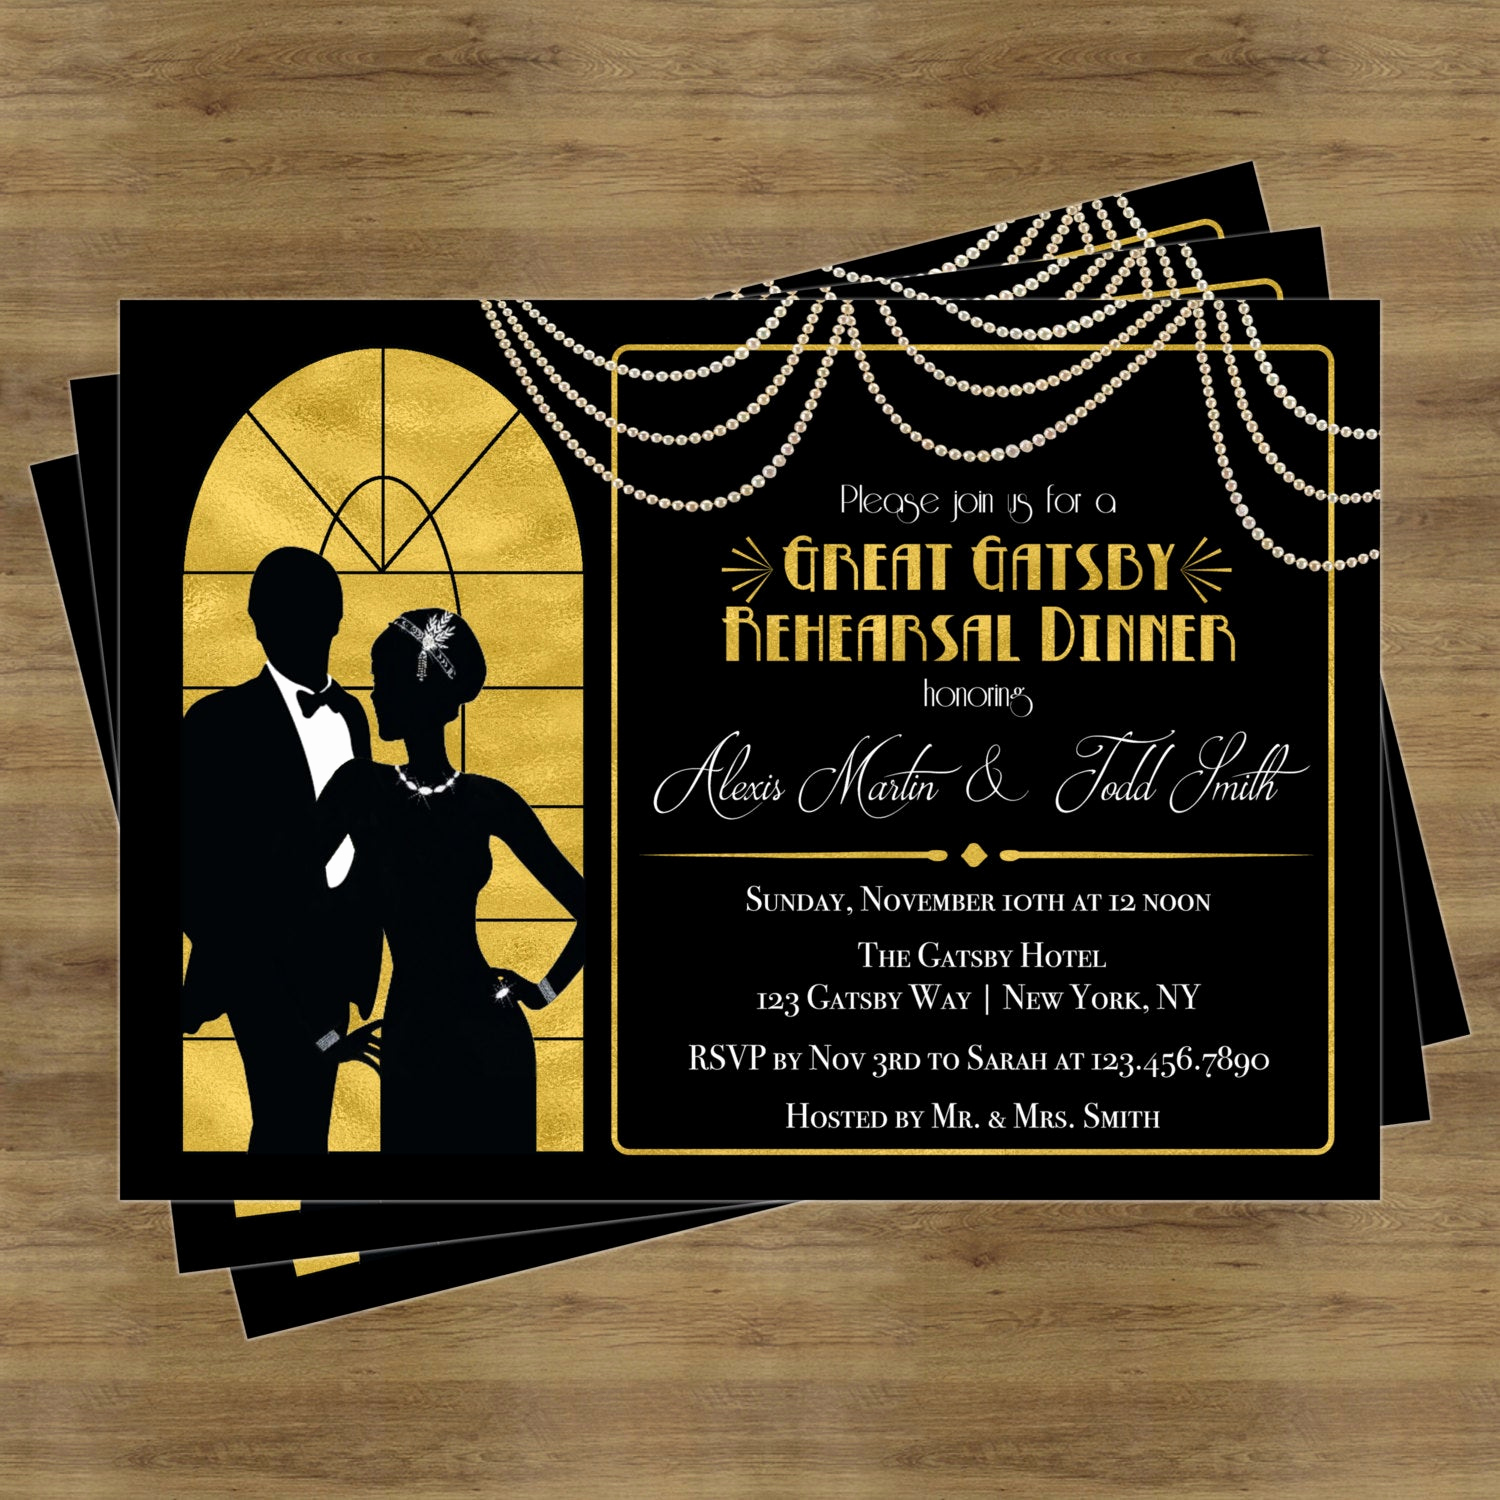 Great Gatsby Invitation Templates Awesome Great Gatsby Invitation Rehearsal Dinner Invitation